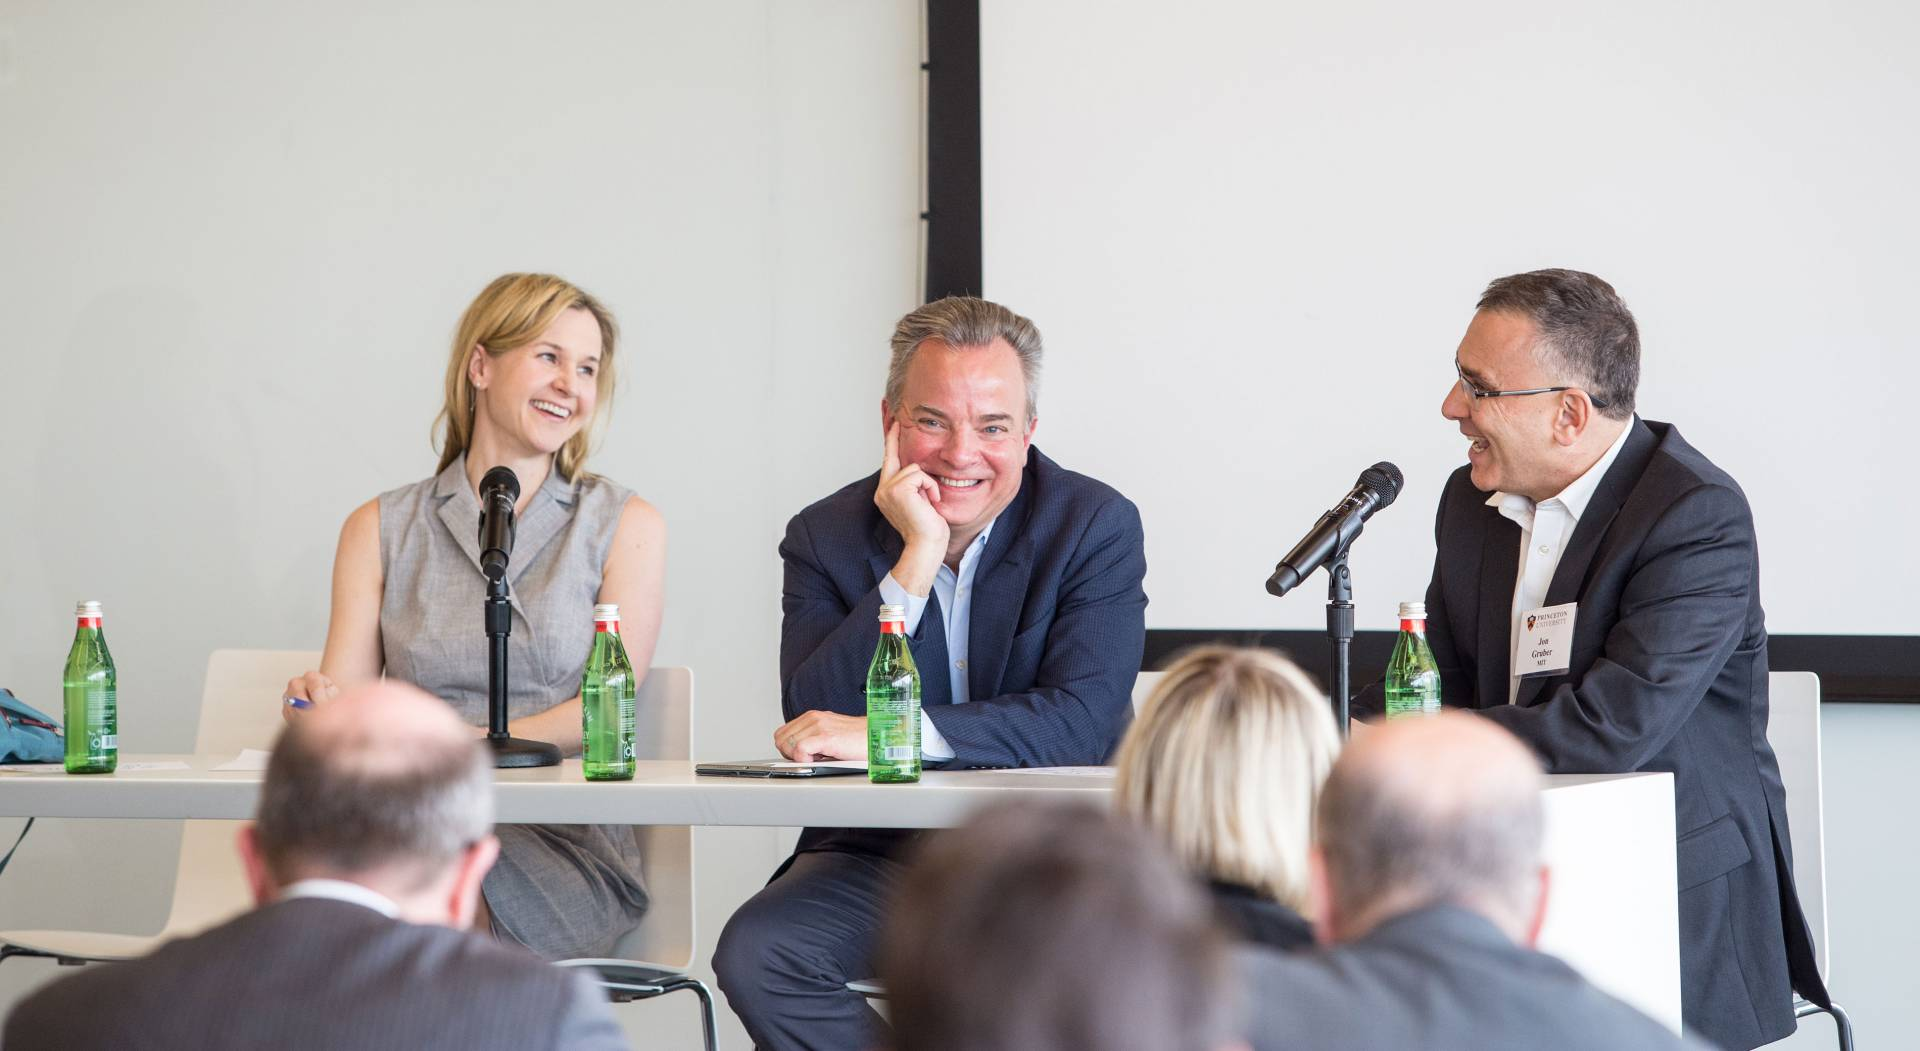 Three experts speak on a panel in front of an audience